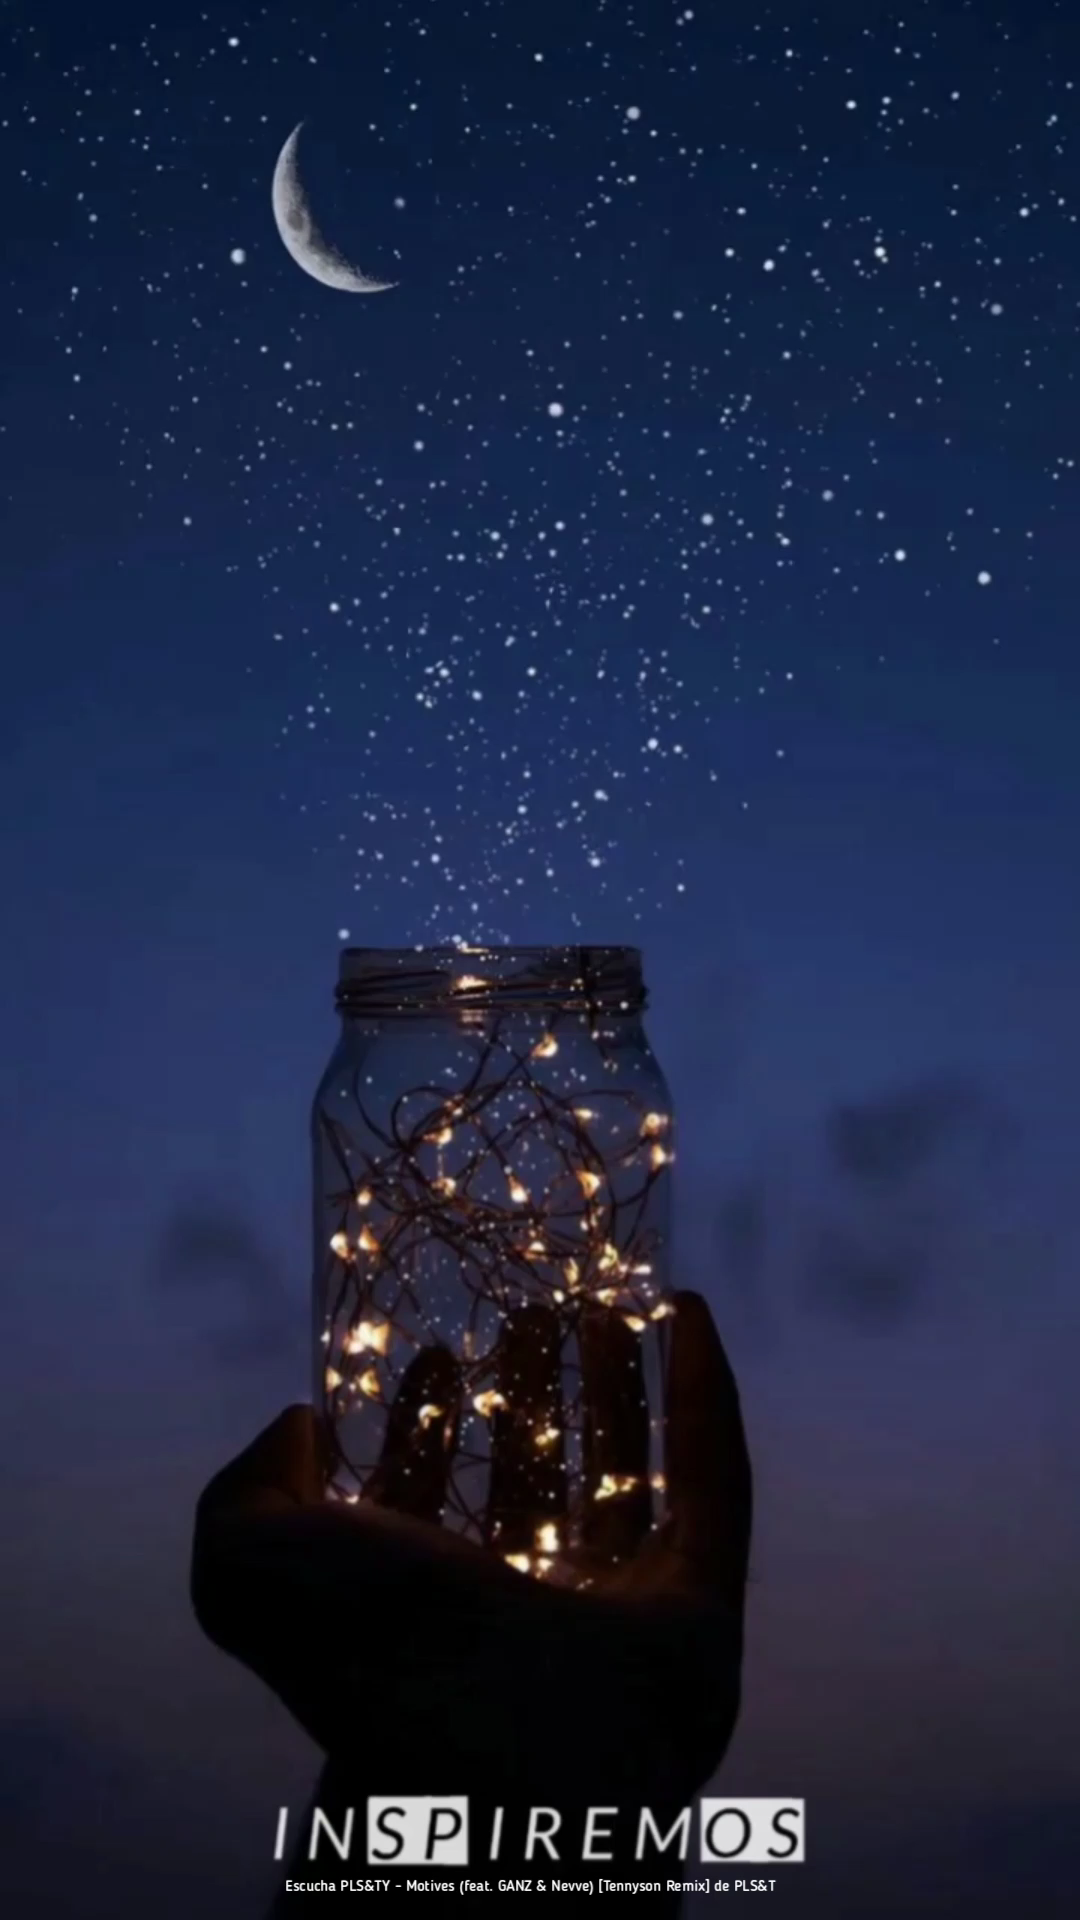 Fireflies shining like stars